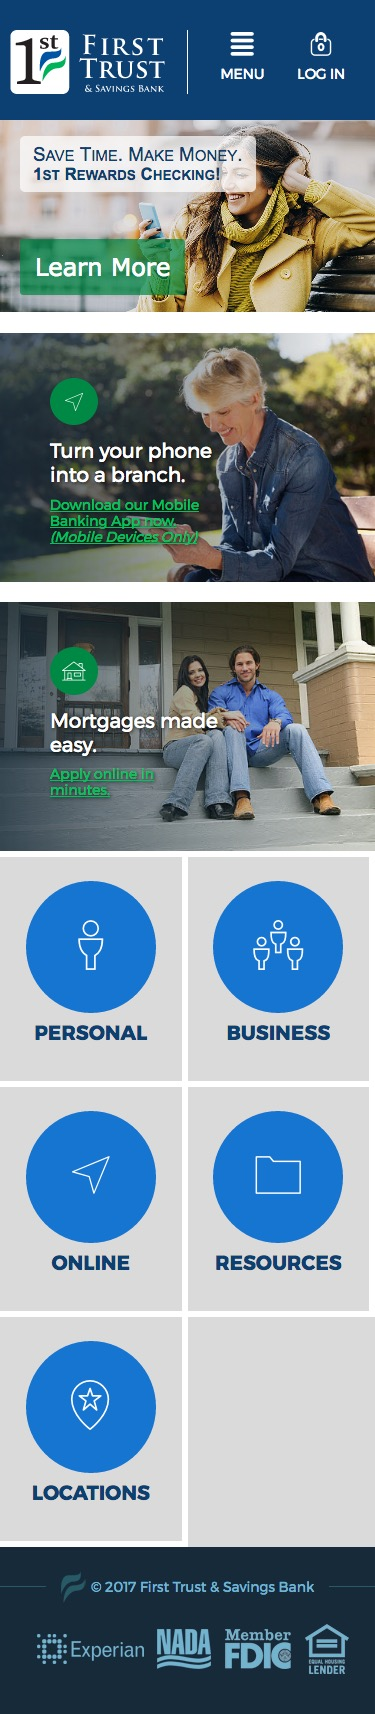 First Trust Bank mobile homepage screenshot